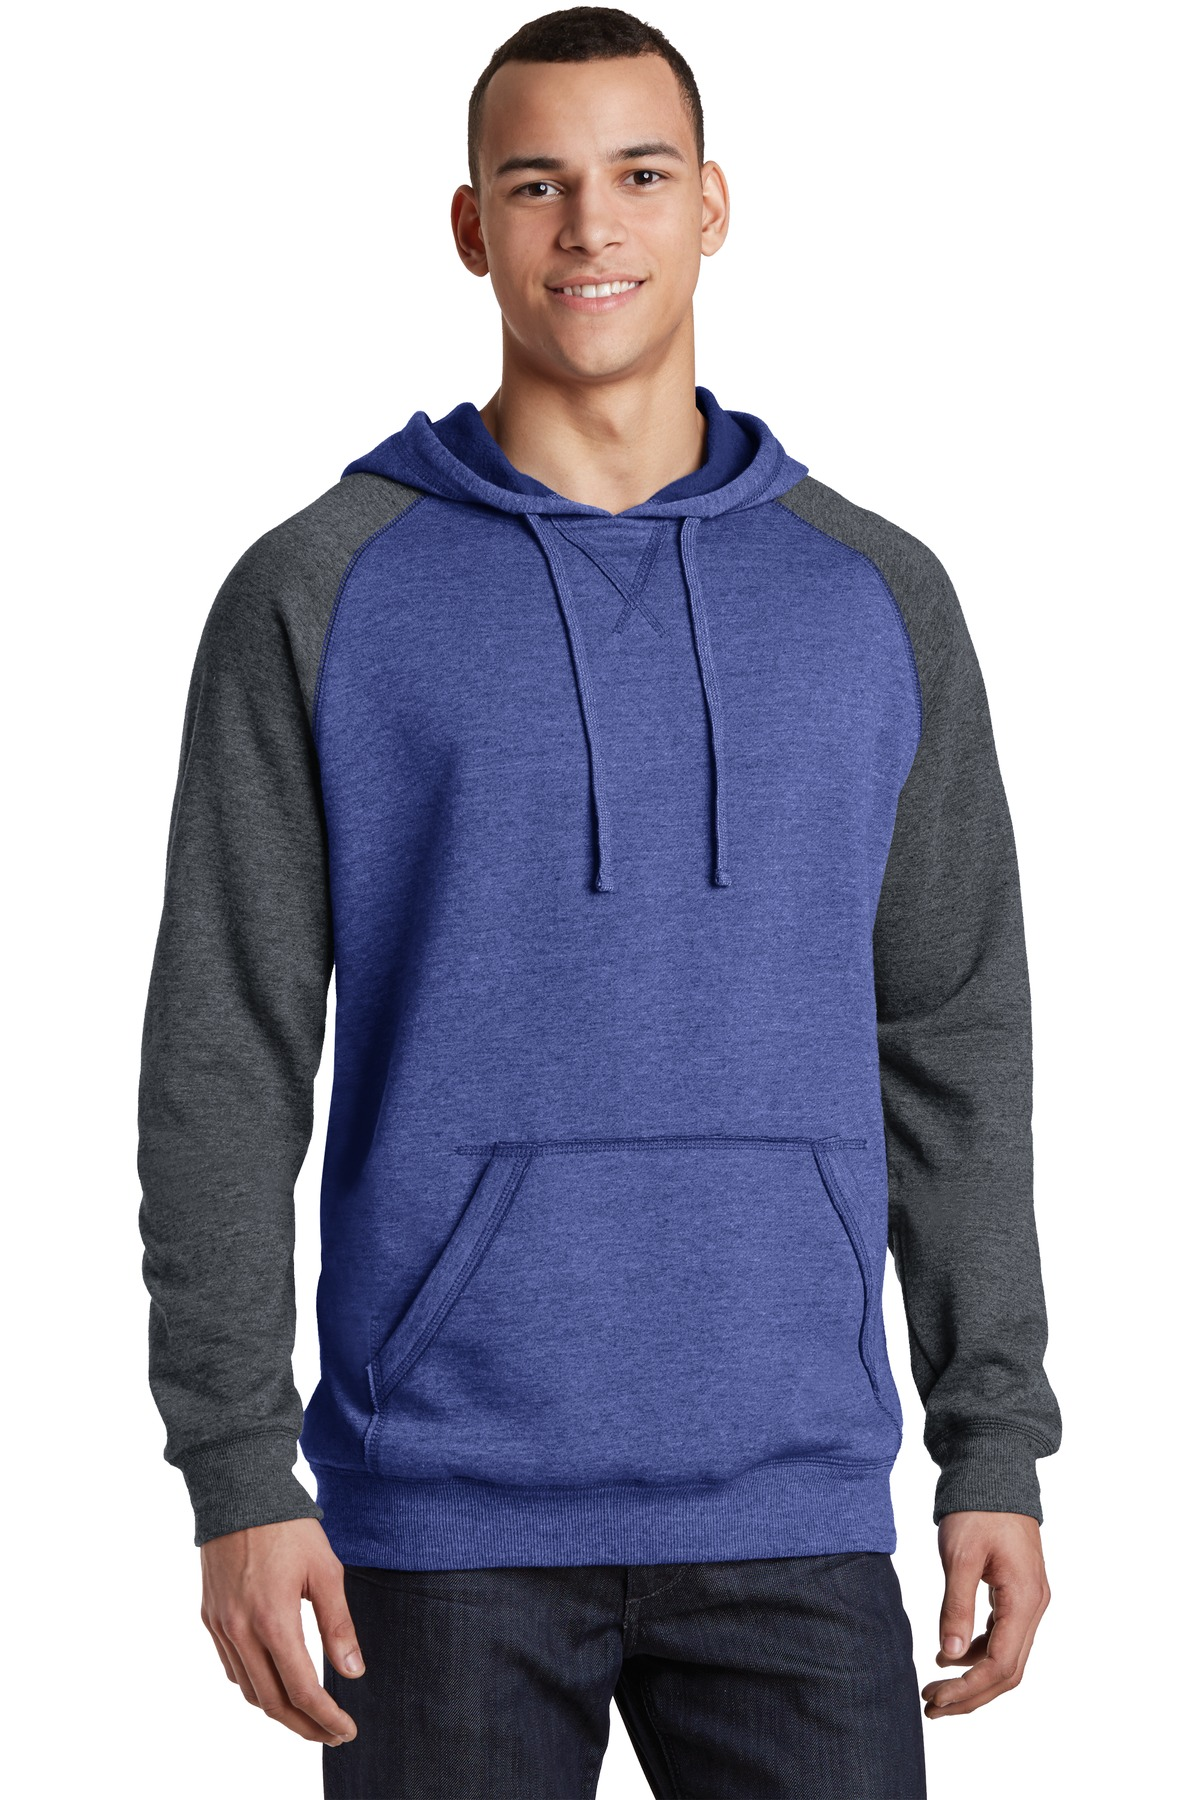 District ®  Young Mens Lightweight Fleece Raglan Hoodie.  DT196 - Heathered Deep Royal/ Heathered Charcoal